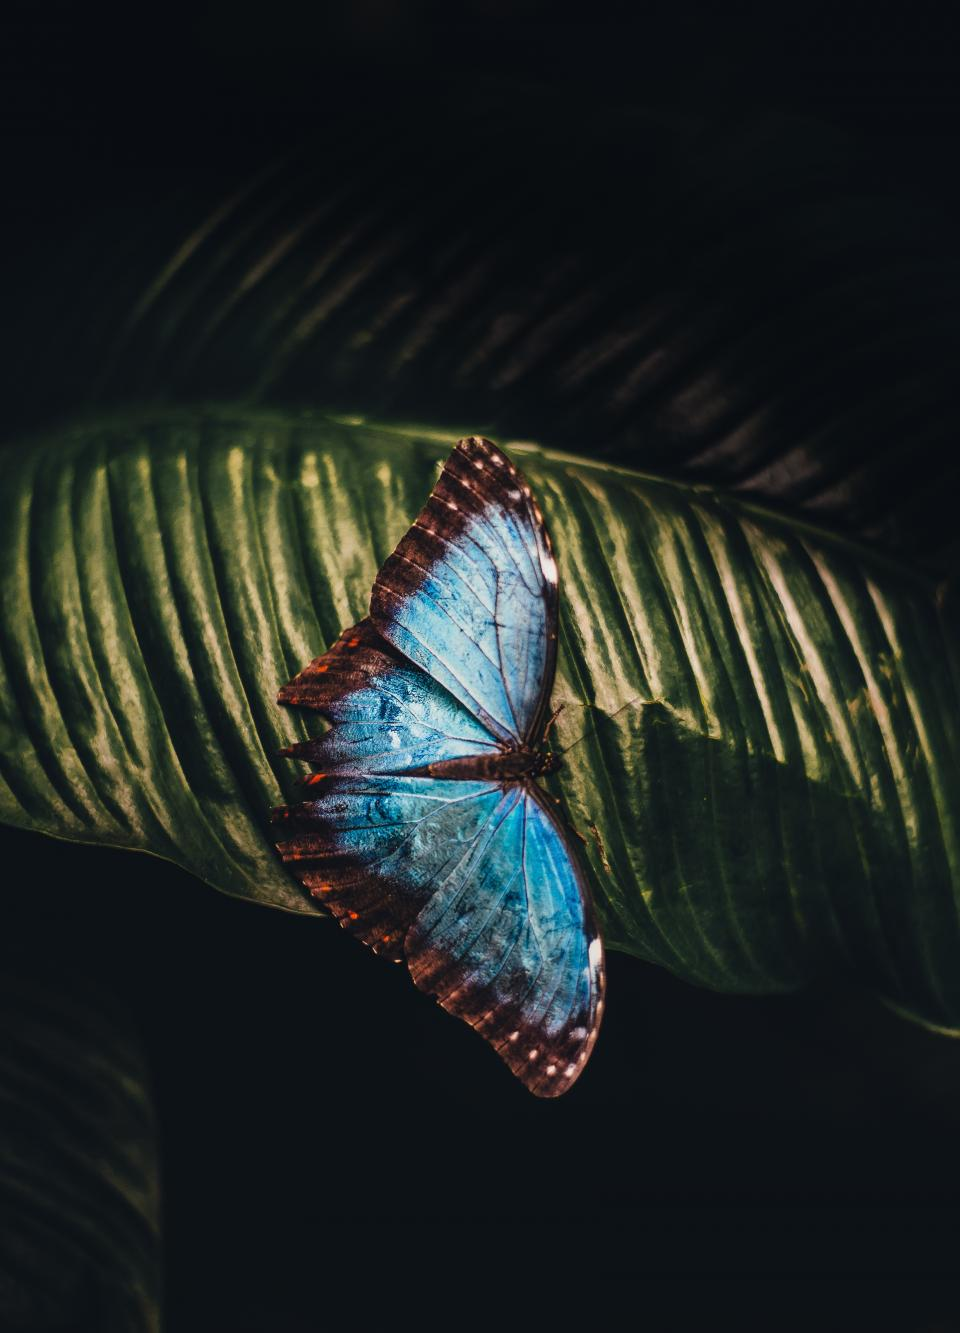 butterfly, leaf, animal, insect, blue, beautiful, nature, outdoor, wings, spread